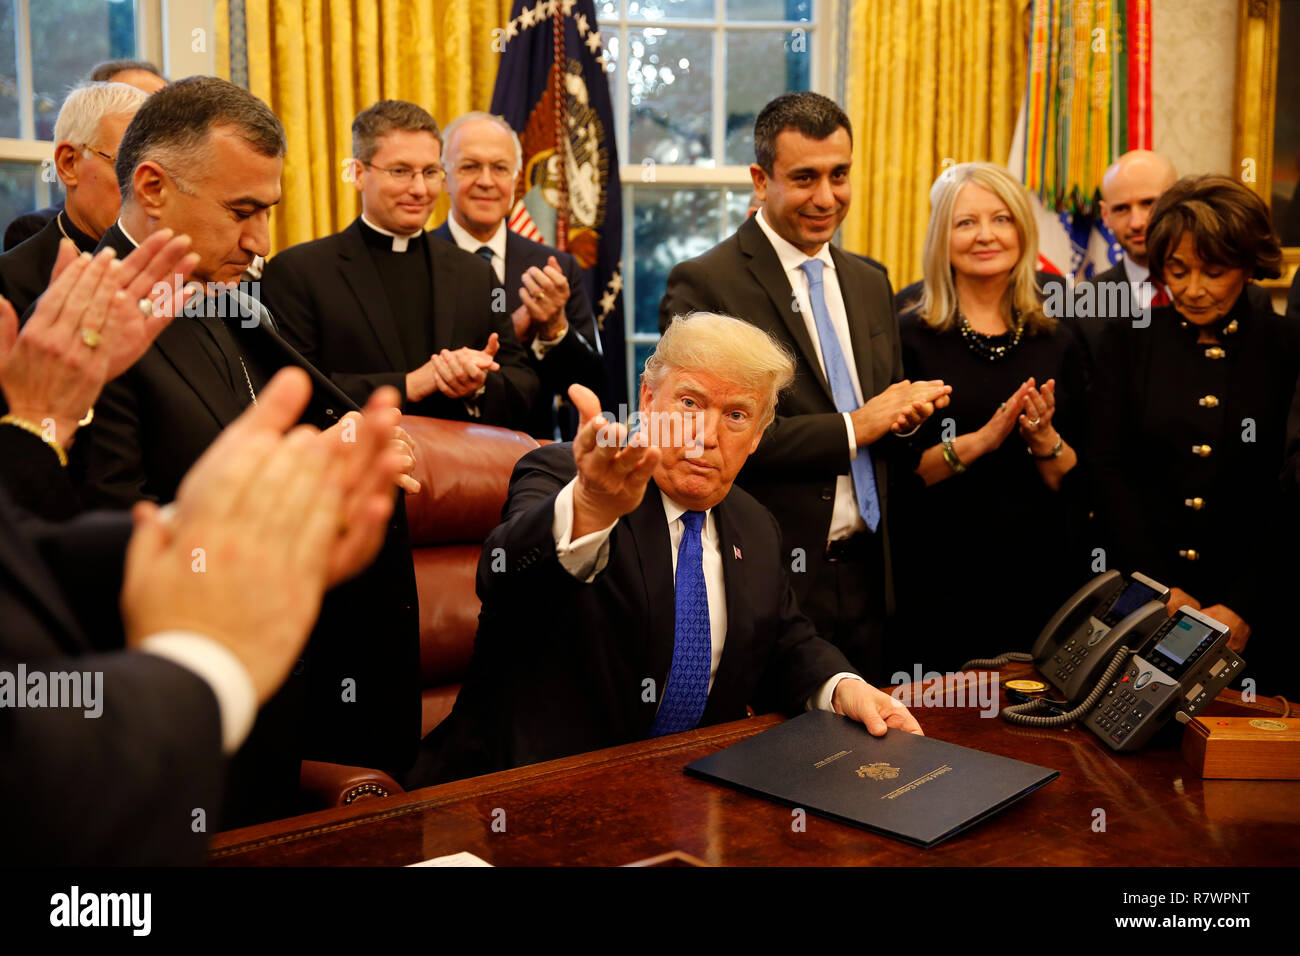 """Washington, United States Of America. 11th Dec, 2018. United States President Donald J. Trump signs H.R. 390, the """"Iraq and Syria Genocide Relief and Accountability Act of 2018"""" in the Oval Office of the White House, in Washington, DC, December 11, 2018. Credit: Martin H. Simon/CNP 